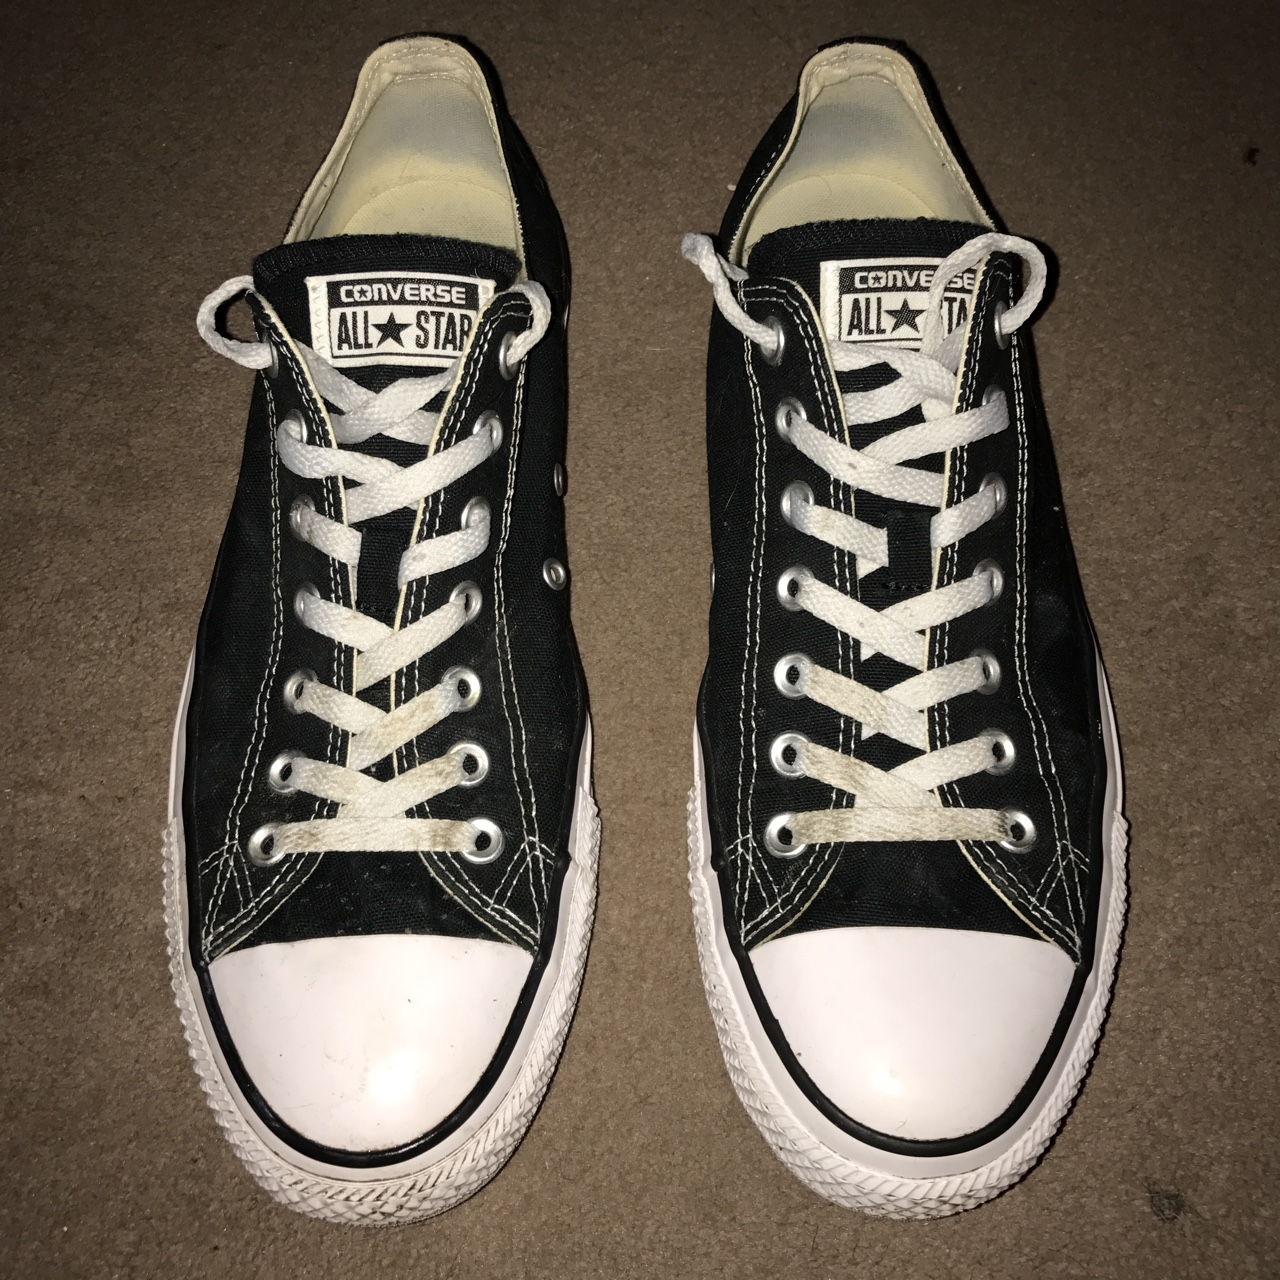 Converse All Star Chuck Taylor Shoes Trainers Depop